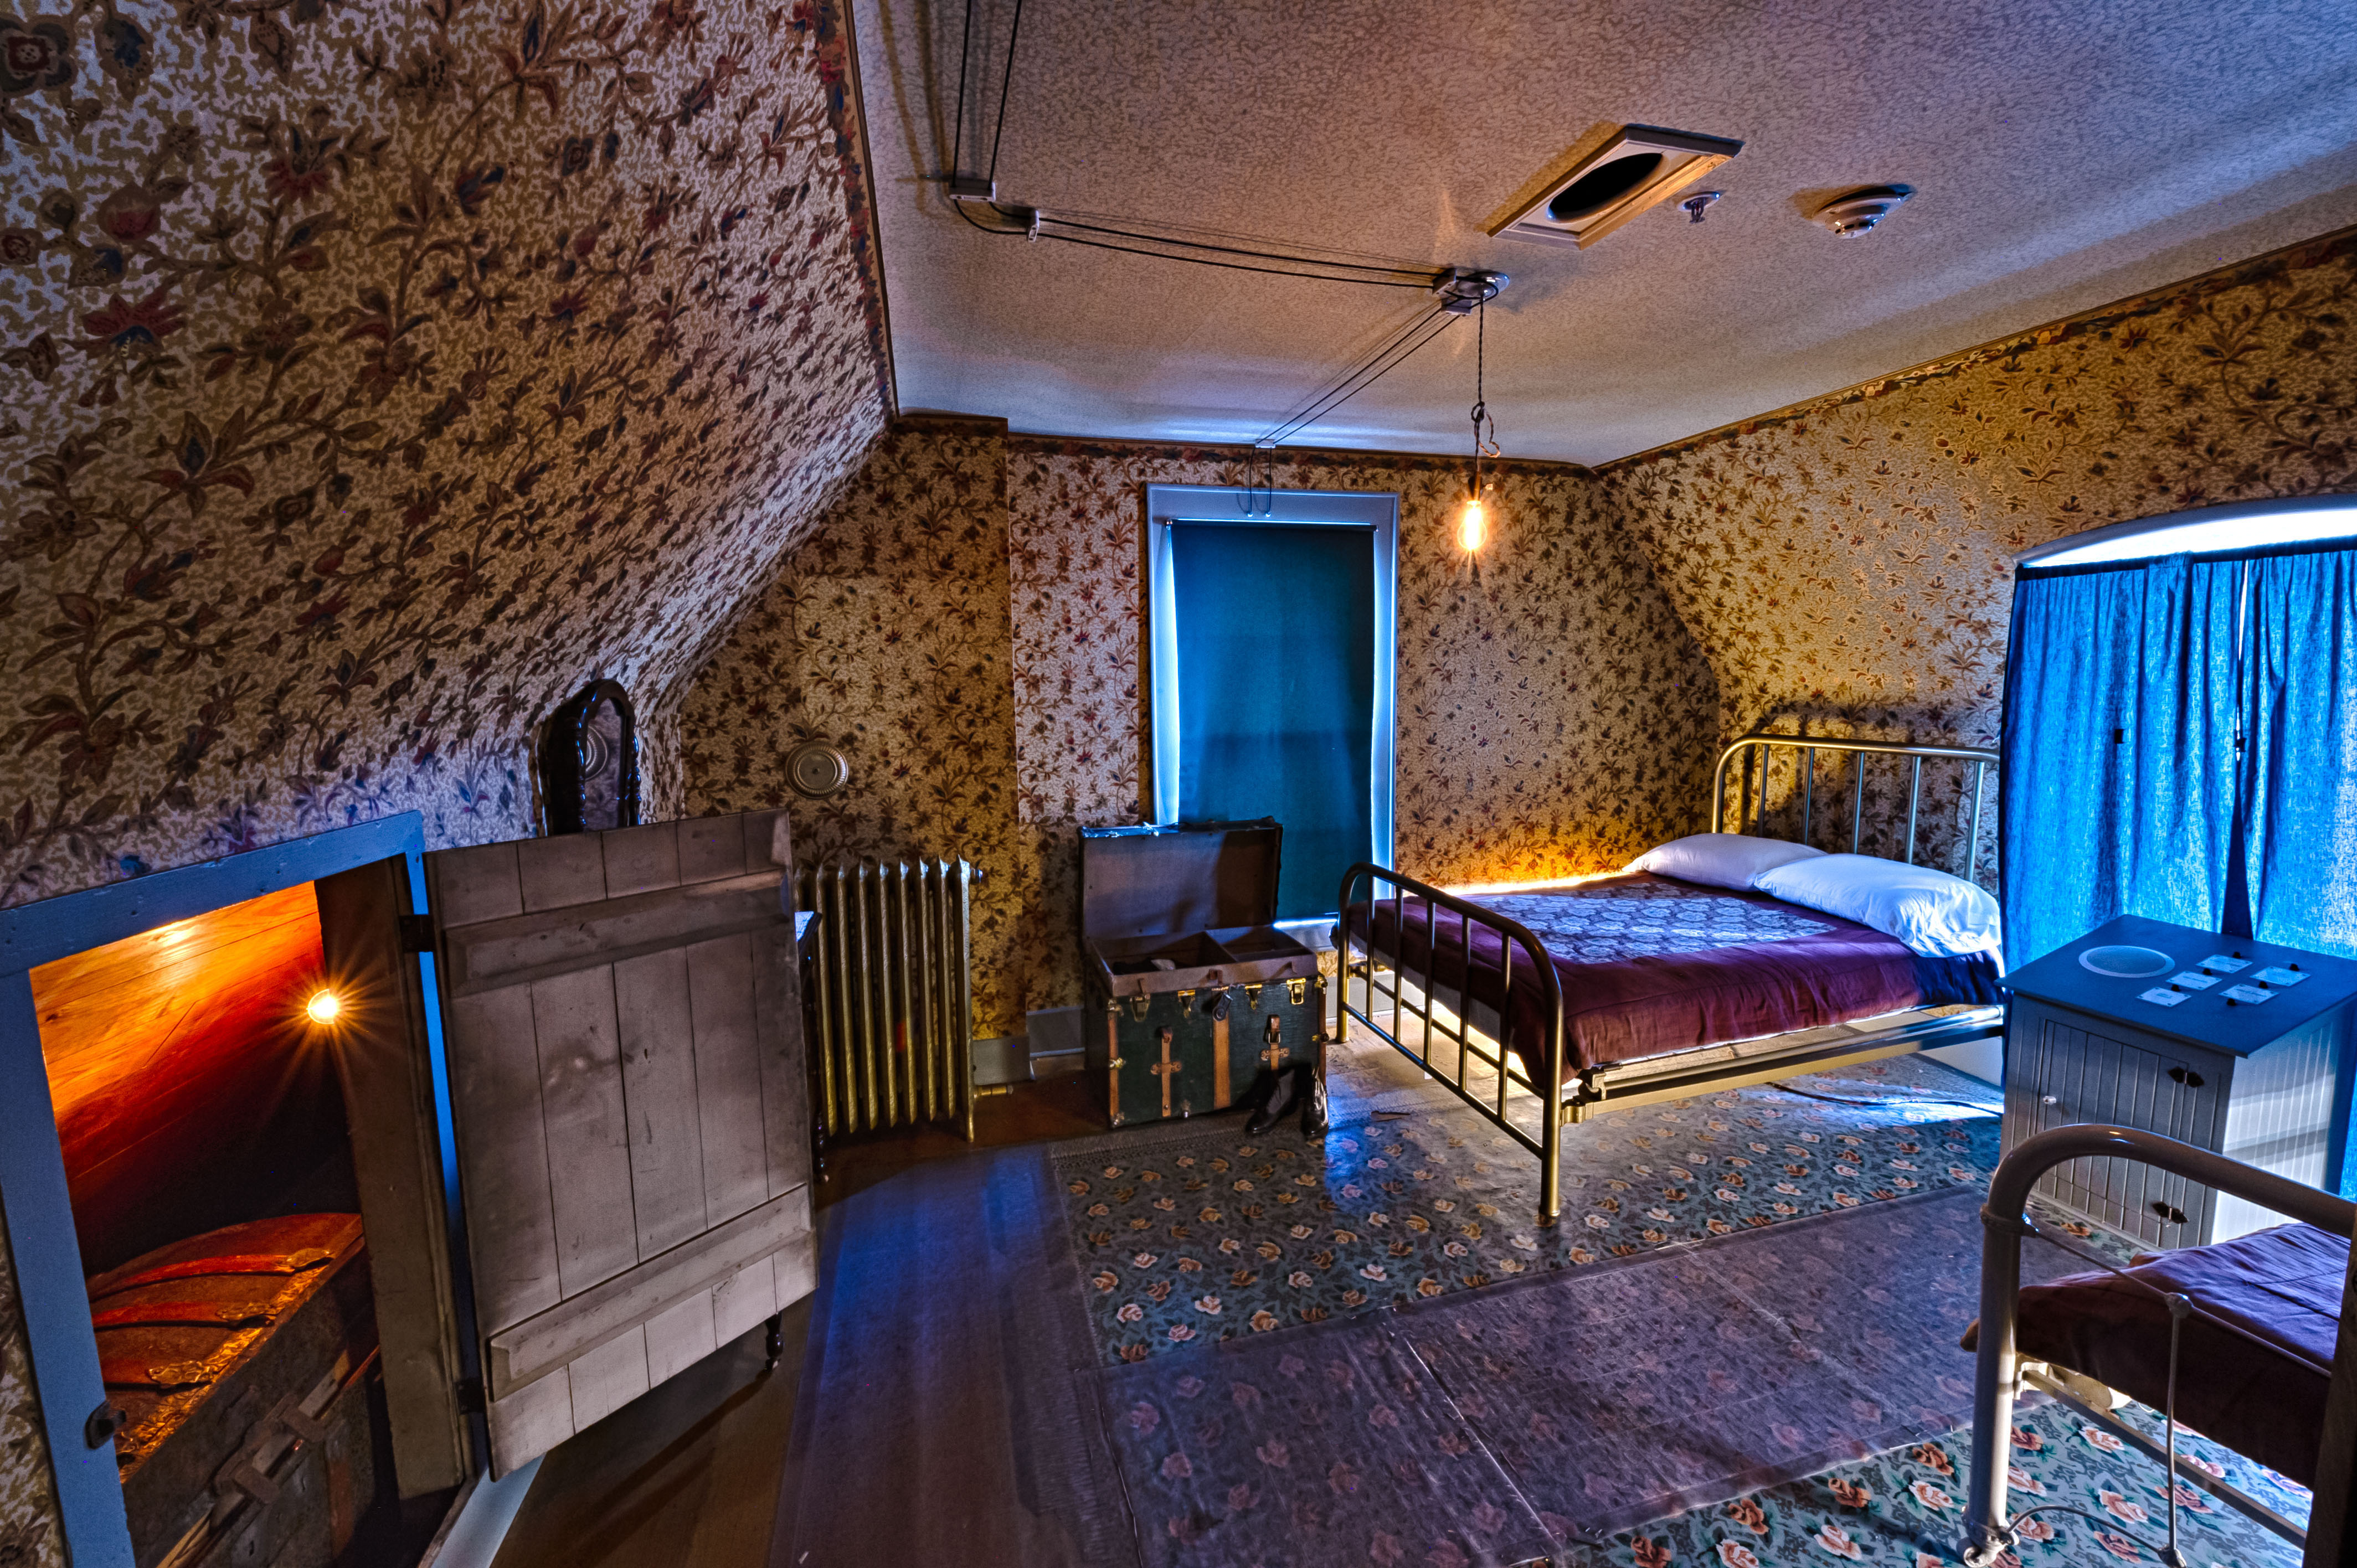 Interior bedroom of the boarding house